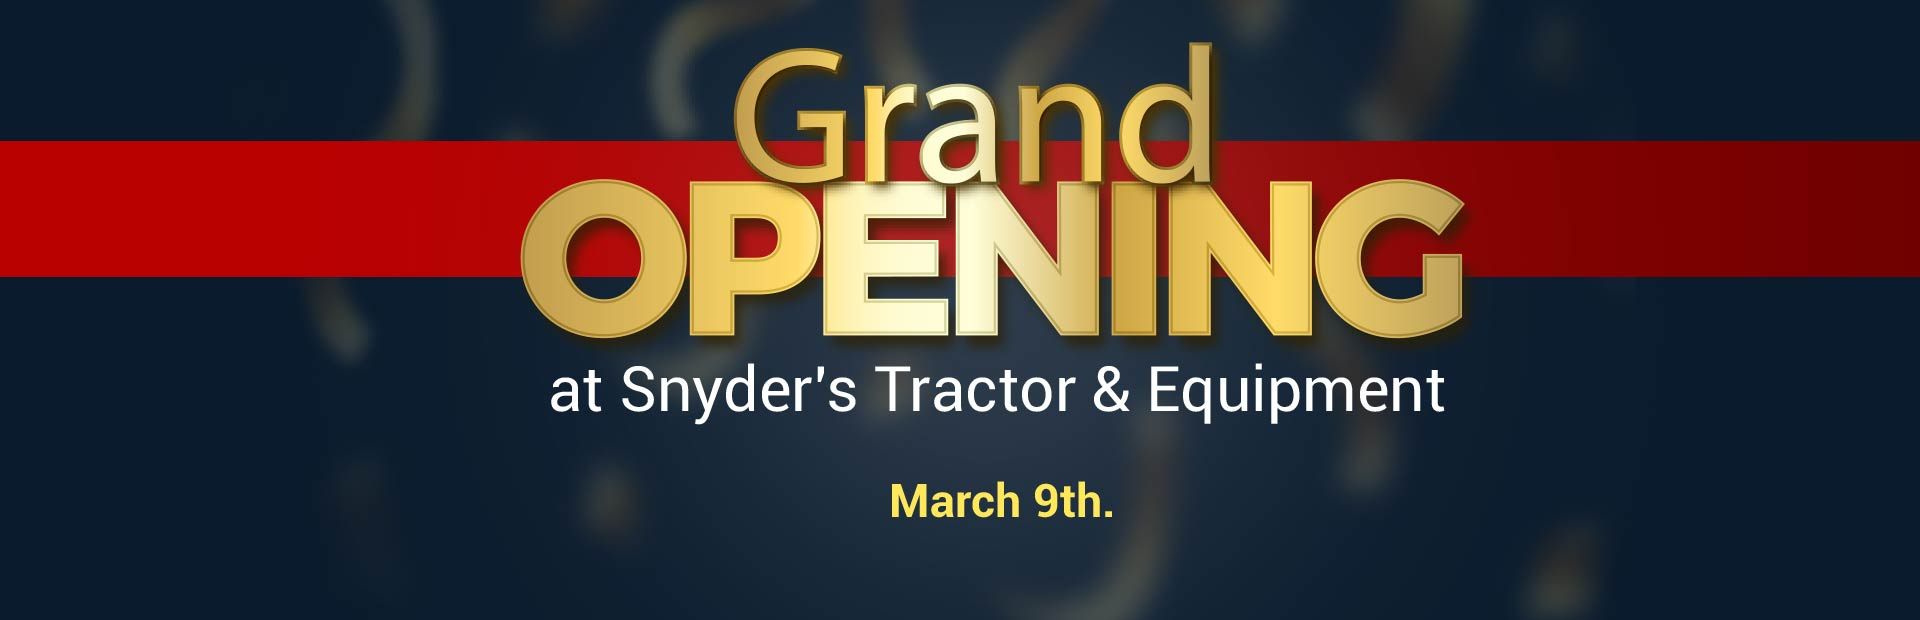 Grand opening at Snyder's Tractor & Equipment: Come visit us today!